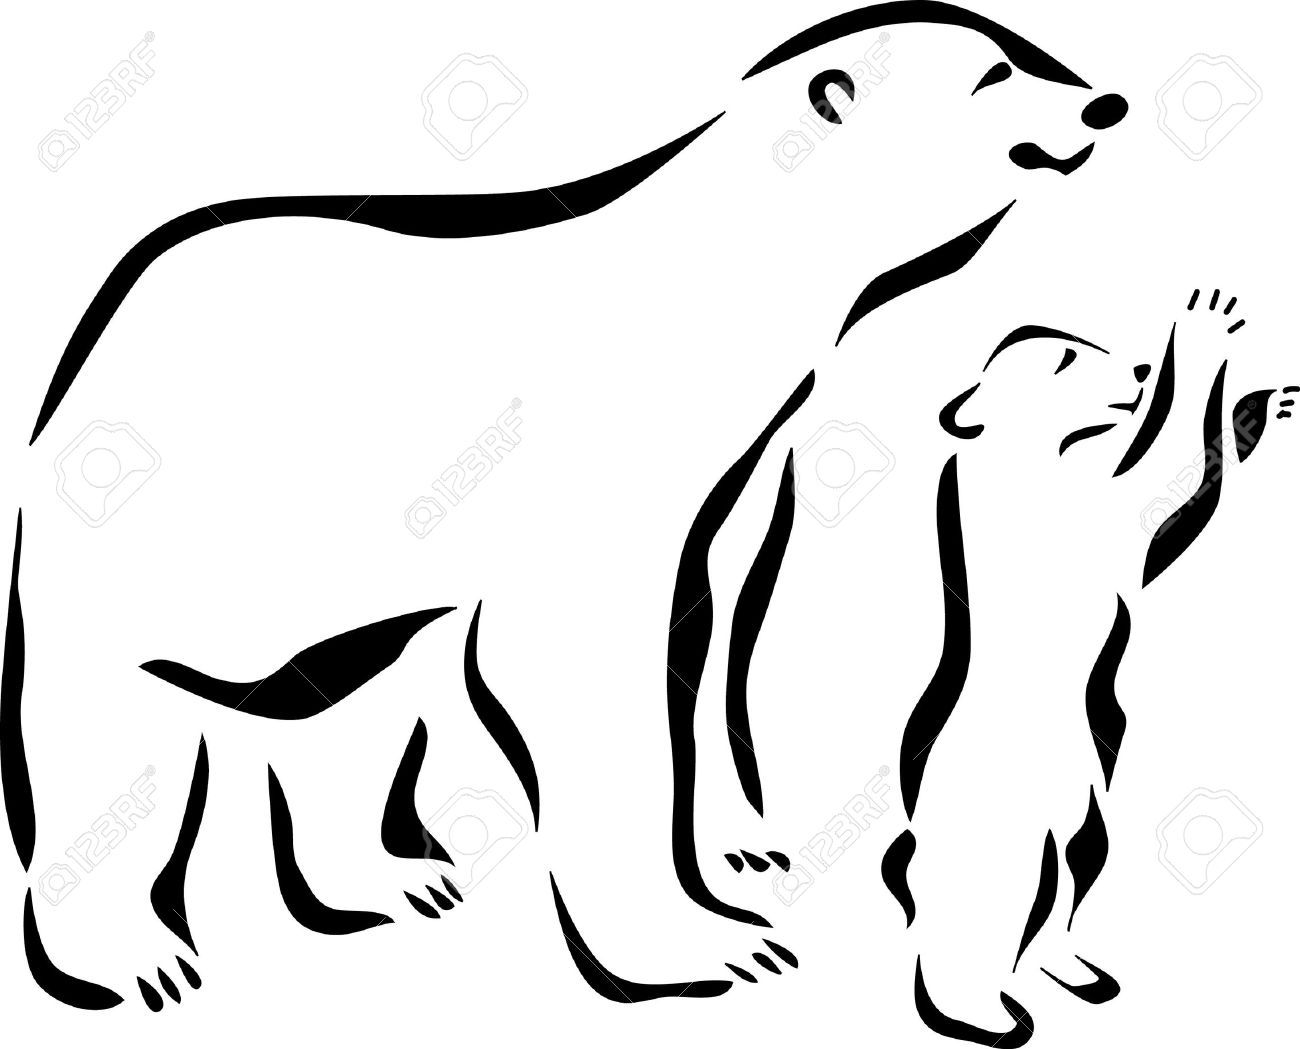 Polar Bear Silhouette Clip Art At Getdrawings